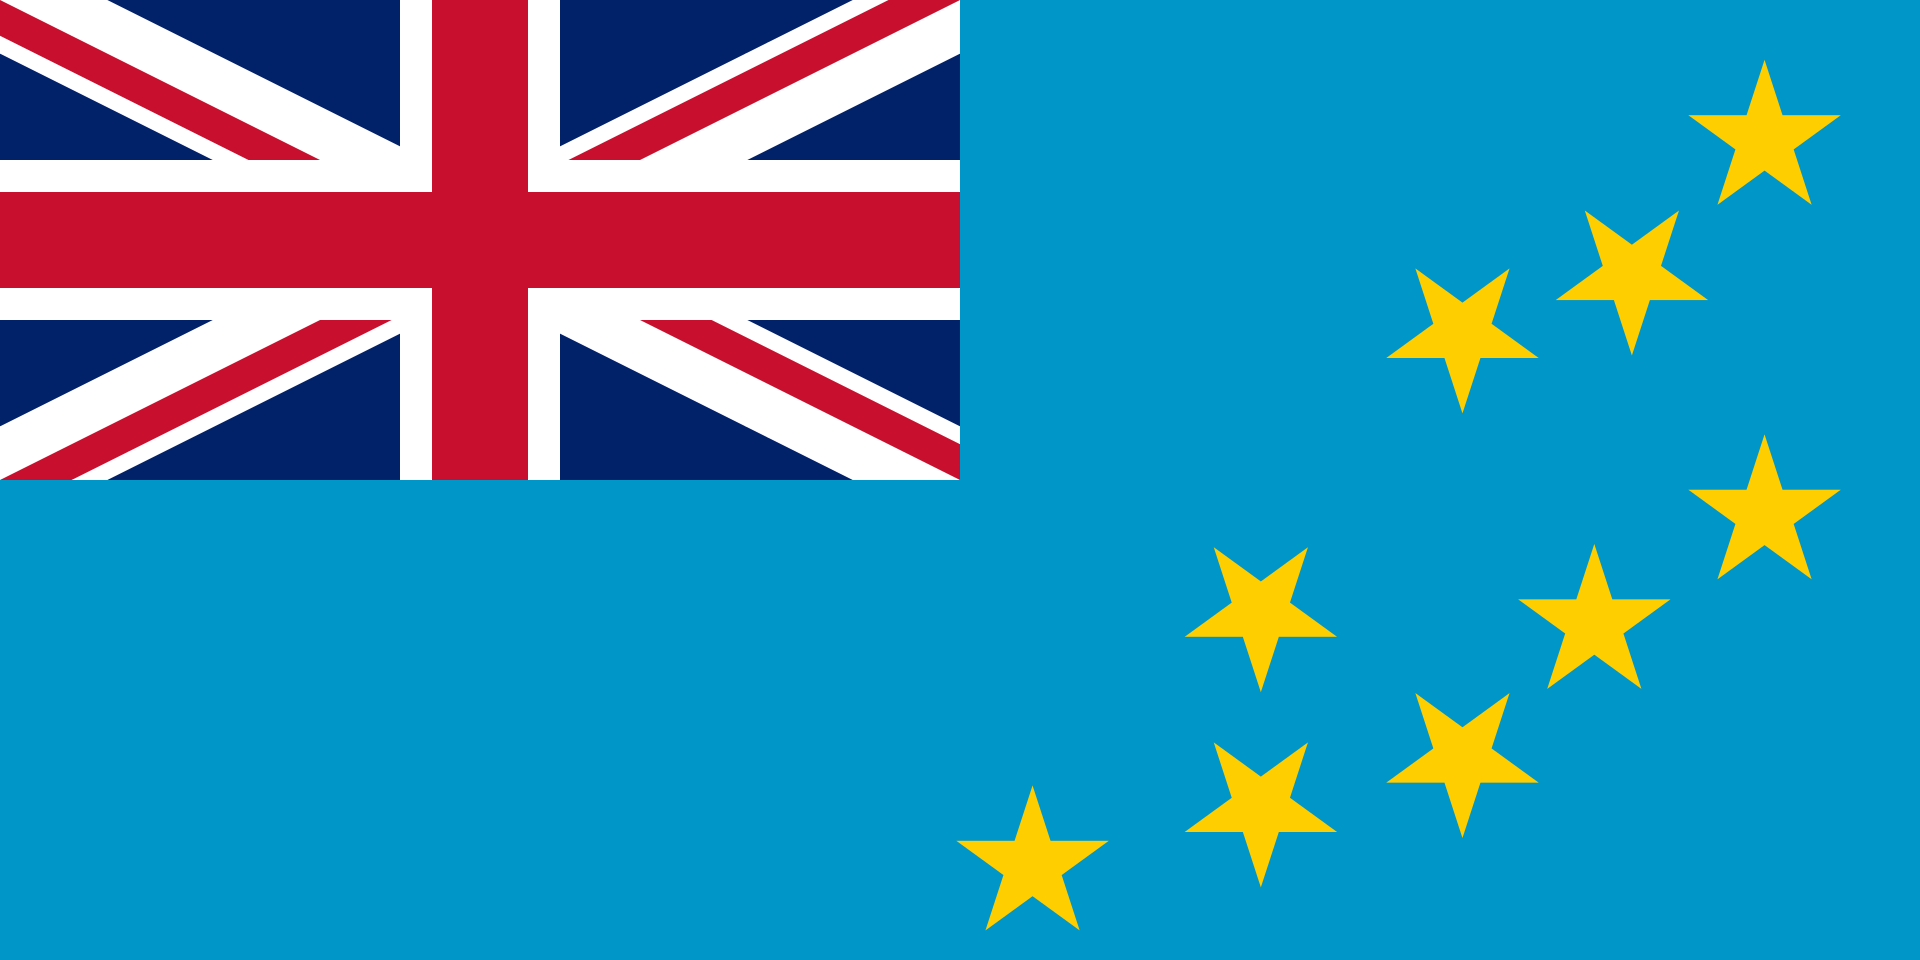 The flag of Tuvalu.